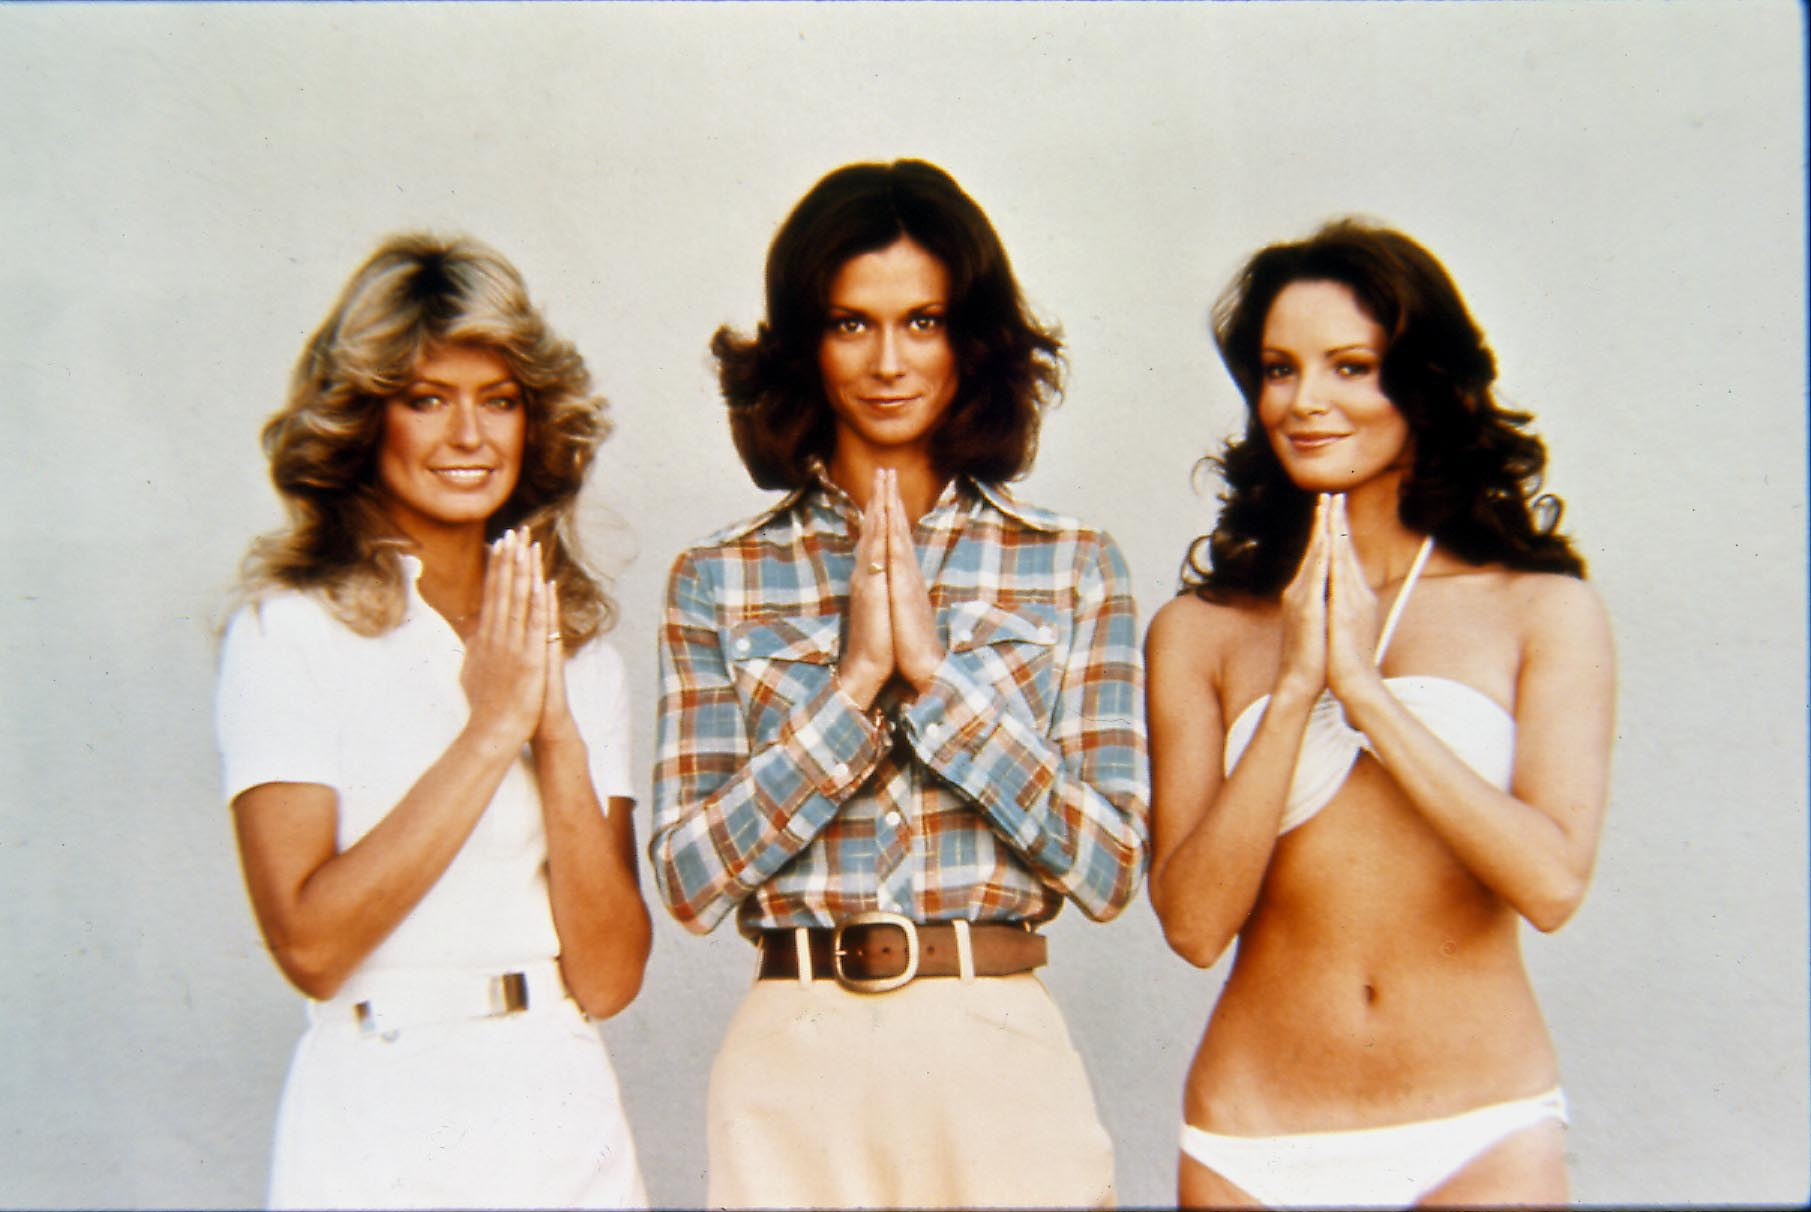 Cast Of 'Charlie's Angels' Left to Right: Farrah Fawcett; Kate Jackson and Jaclyn Smith | Photo: GettyImages